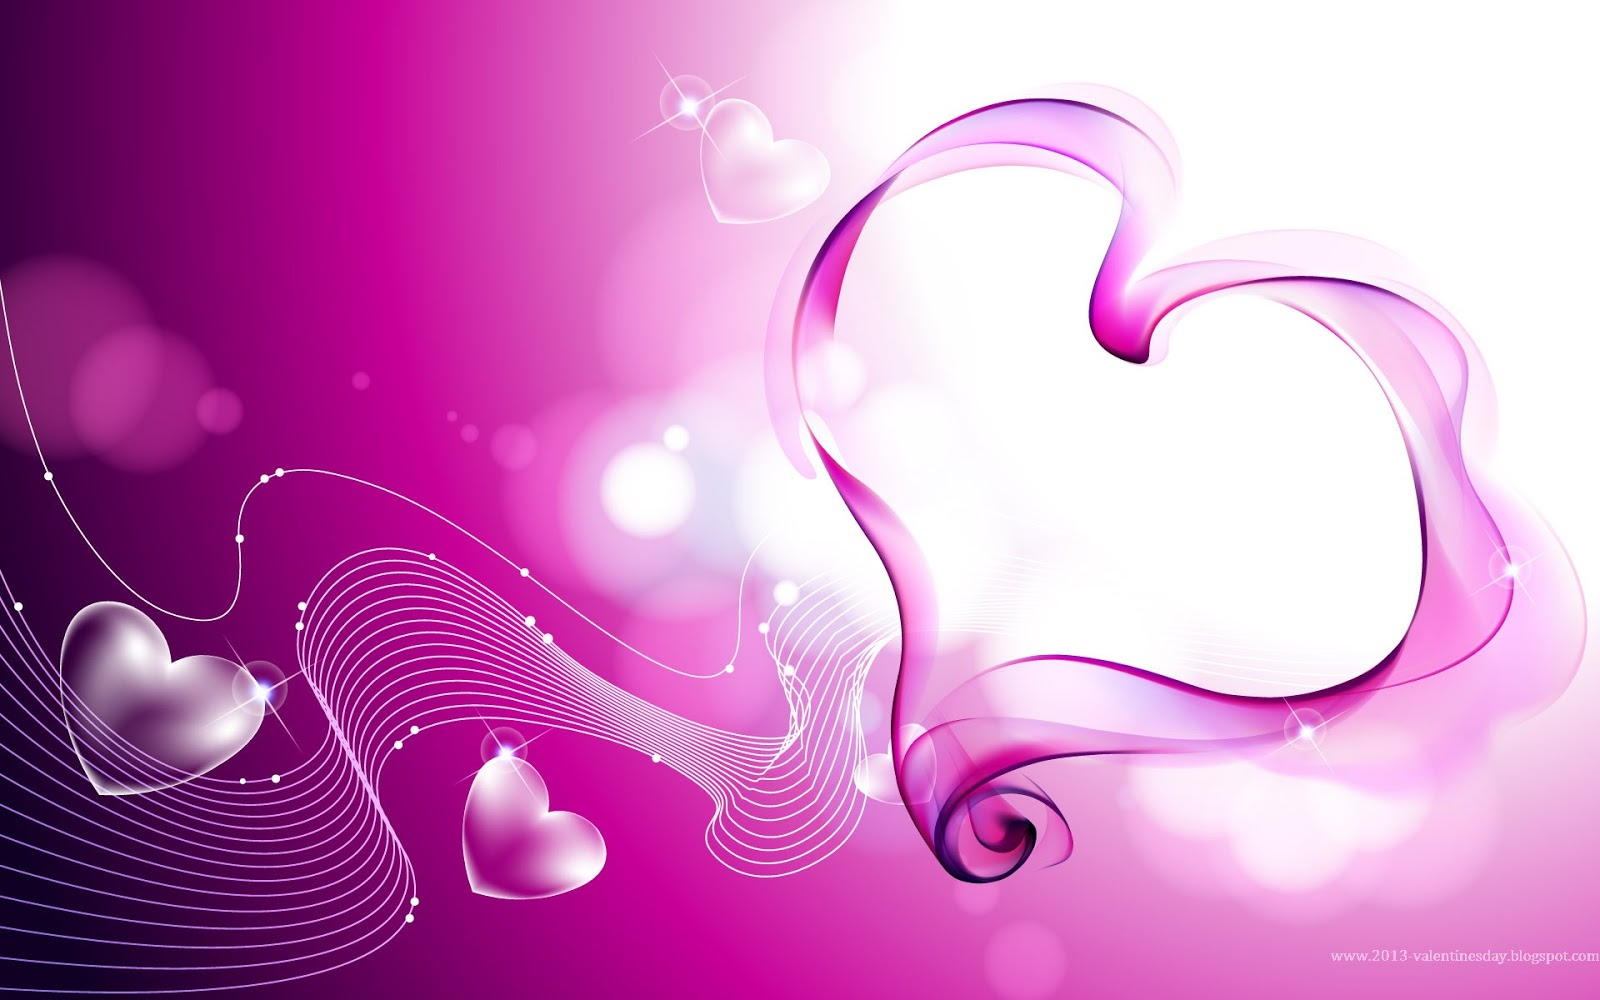 Valentines day hearts HD wallpapers 1024px and 1920px